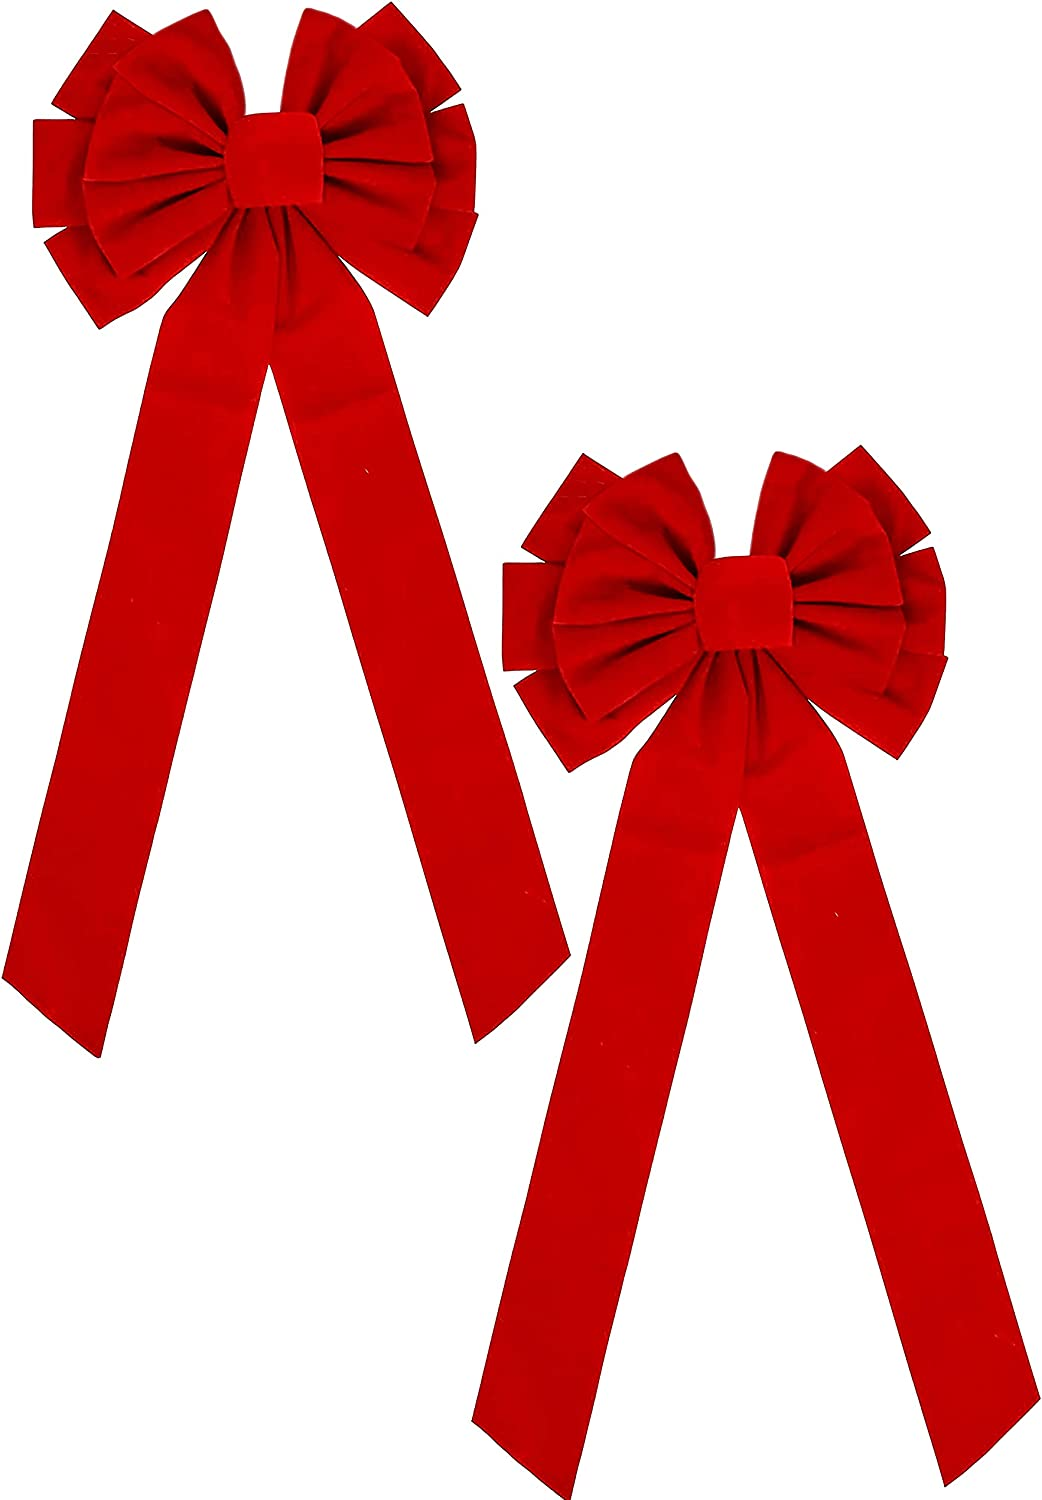 """Black Duck Brand 12-Loop Giant Jumbo 42"""" x 16"""" Red Velvet Christmas Holiday Decor Bows for Front Doors, Garage Doors, Fences, and More! (Red w/Glitter, 2 Pack)"""